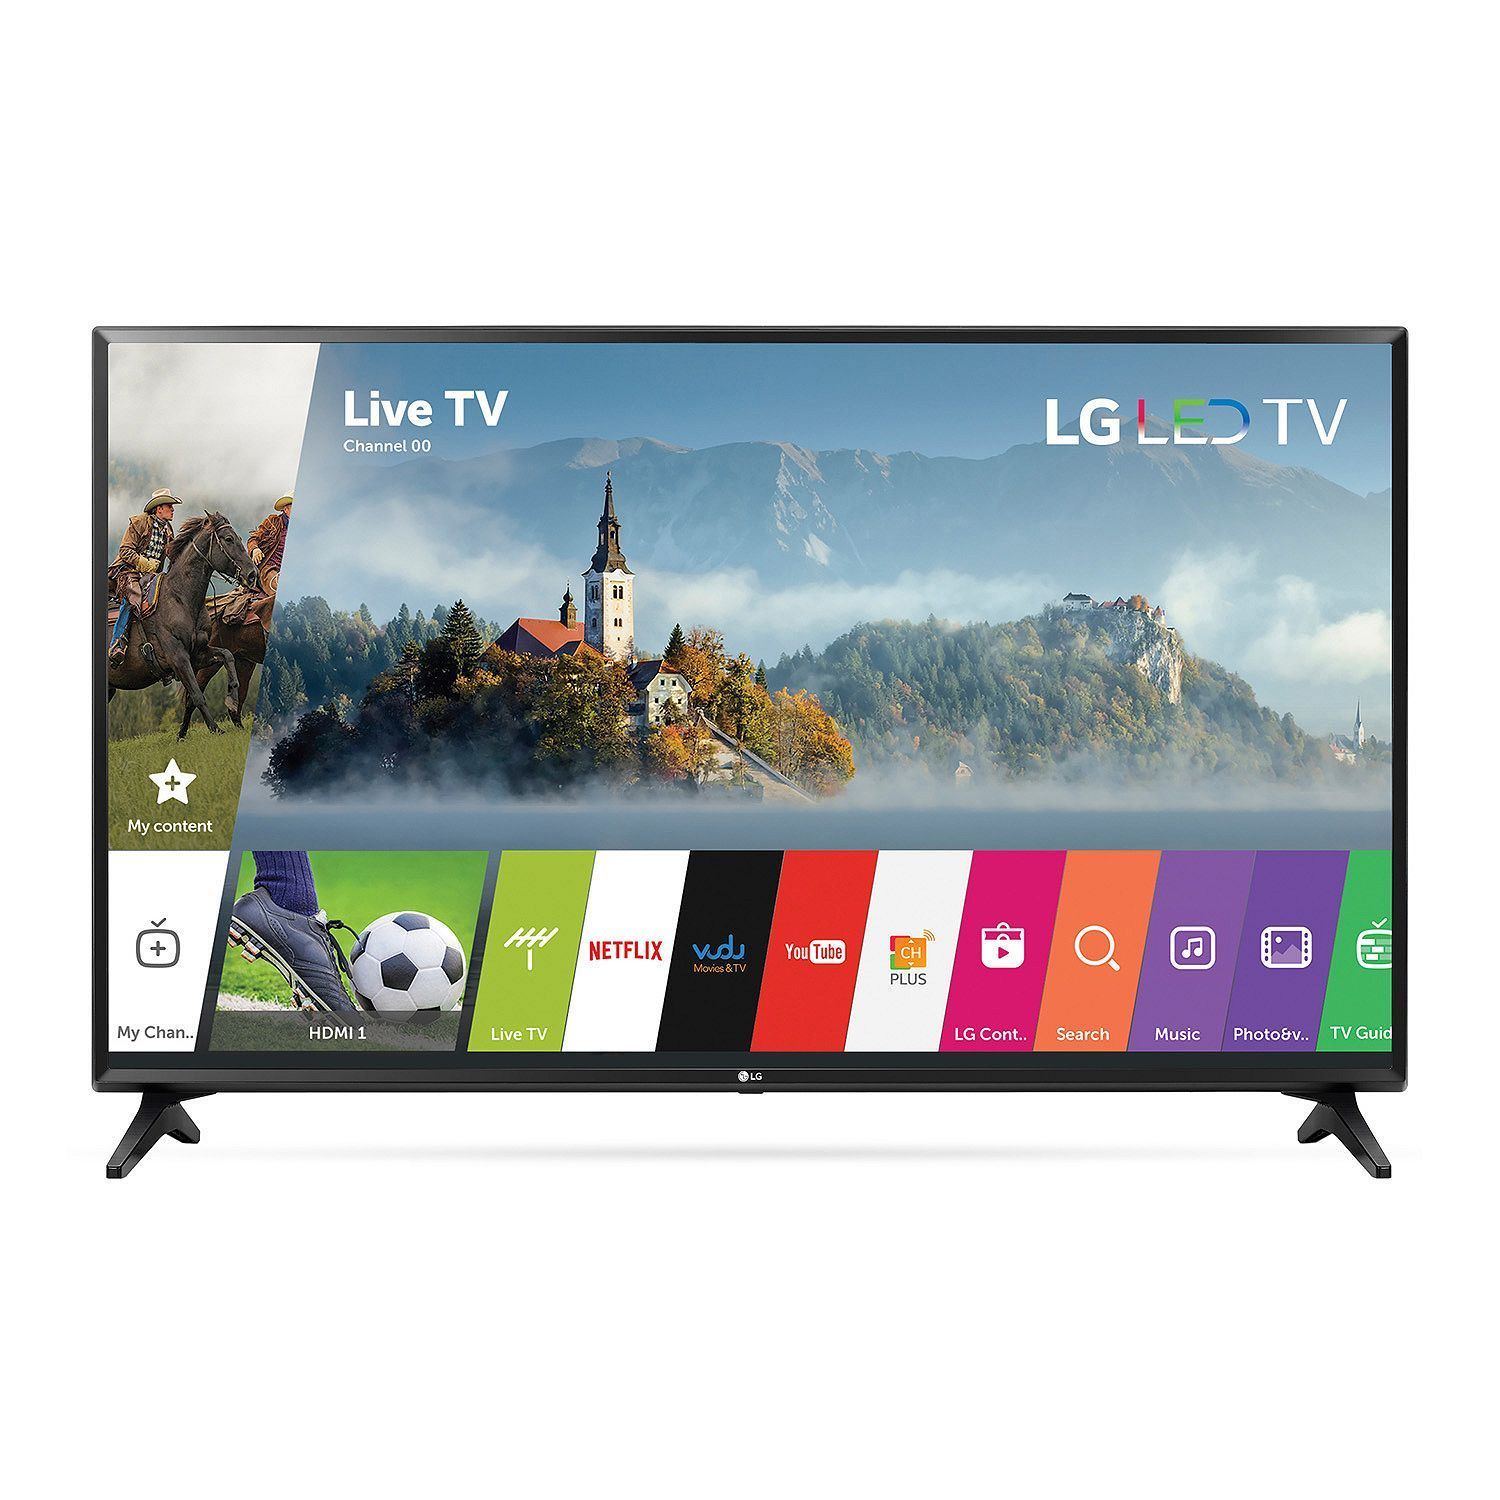 LG 43″ CLASS 4K SMART LED TV (43UJ6300) (2160P